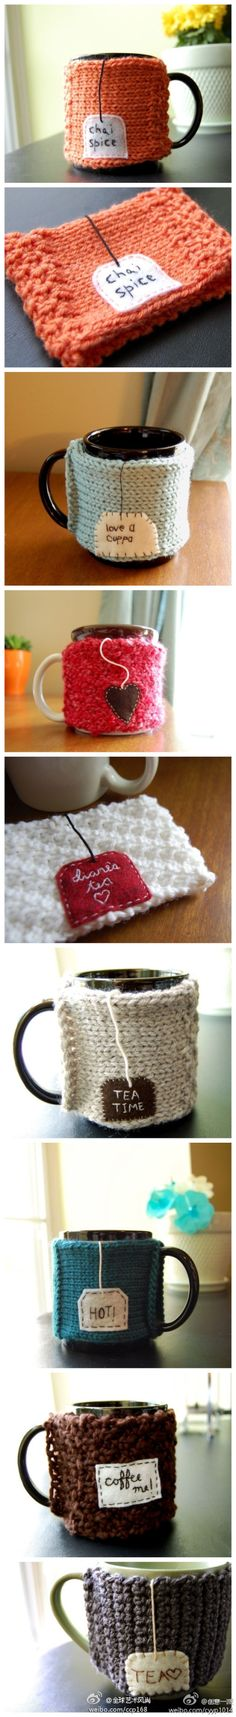 Cute idea...and so easy to make.